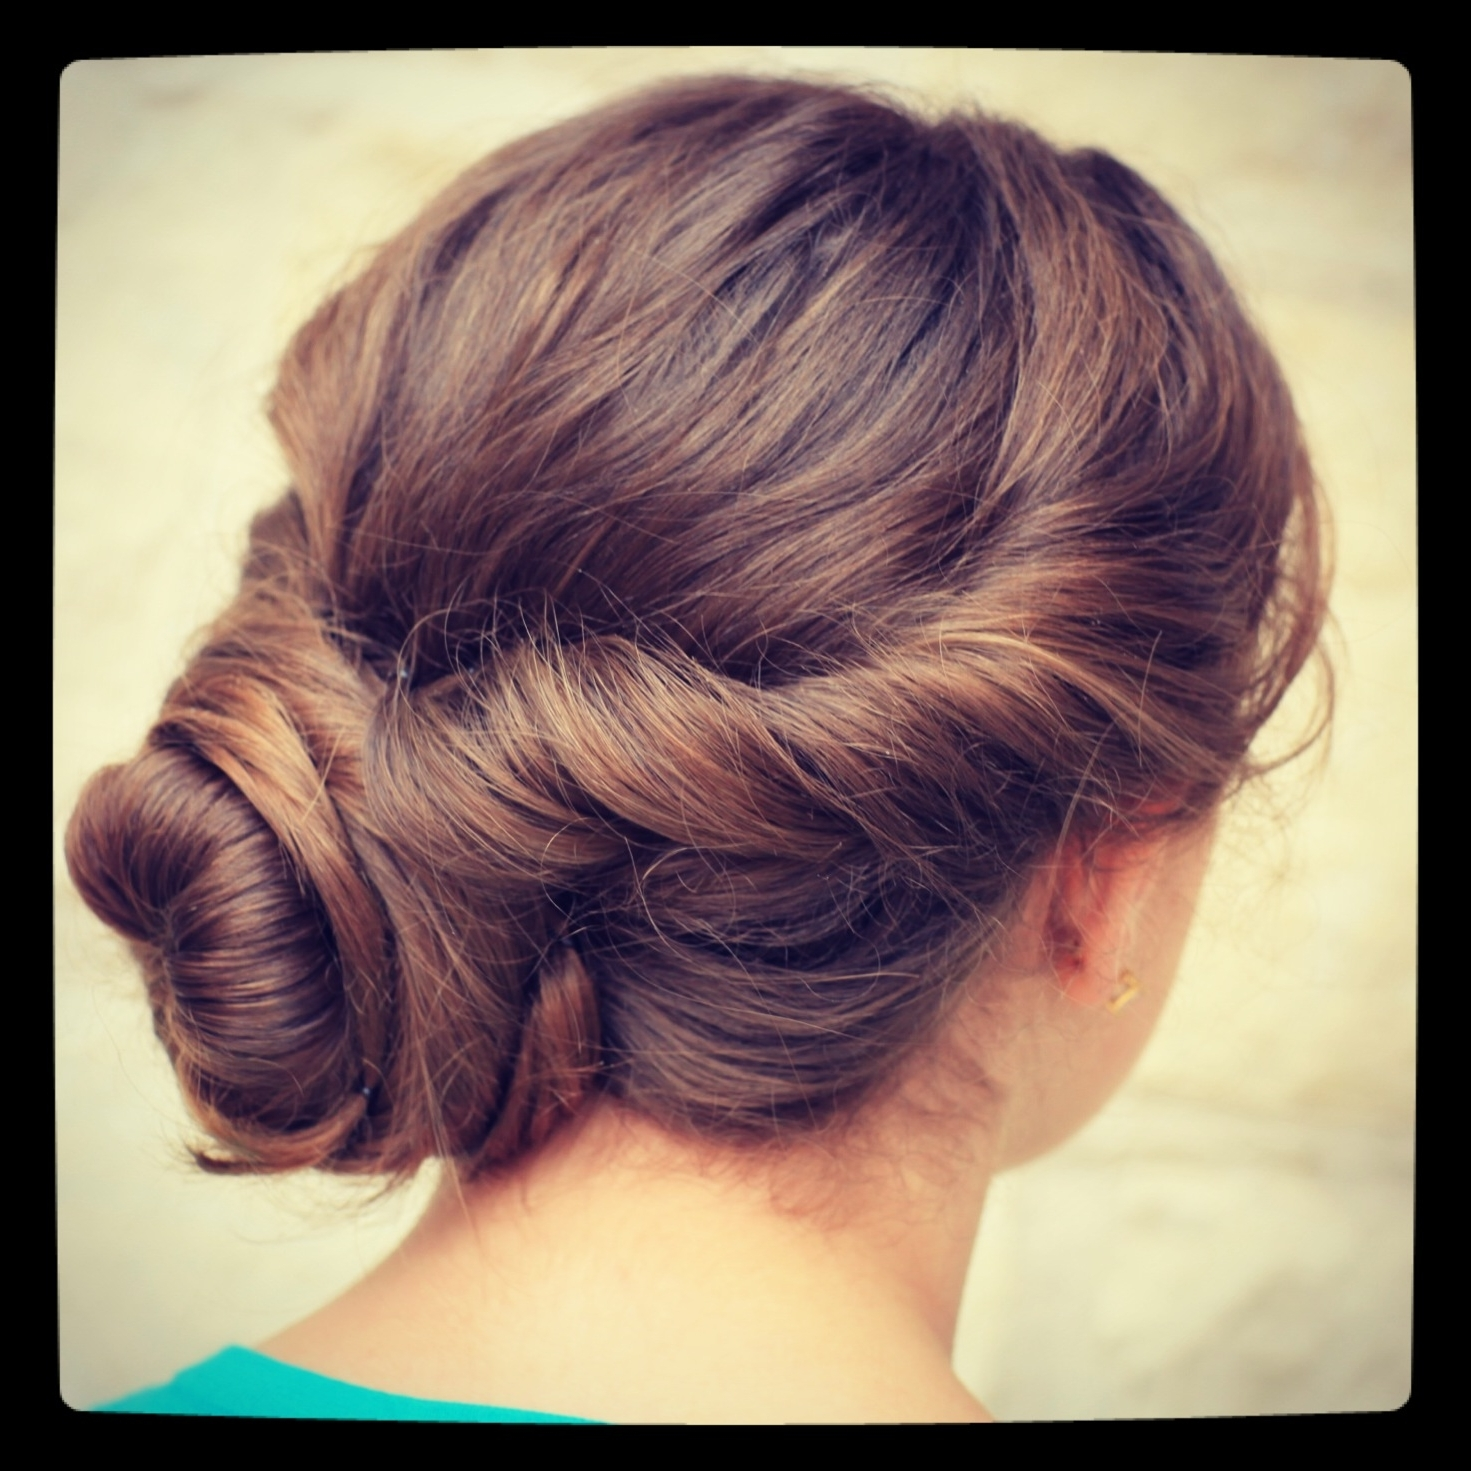 Easy Twist Updo | Prom Hairstyles | Cute Girls Hairstyles Throughout Twisted Bun Updo Hairstyles (View 6 of 15)